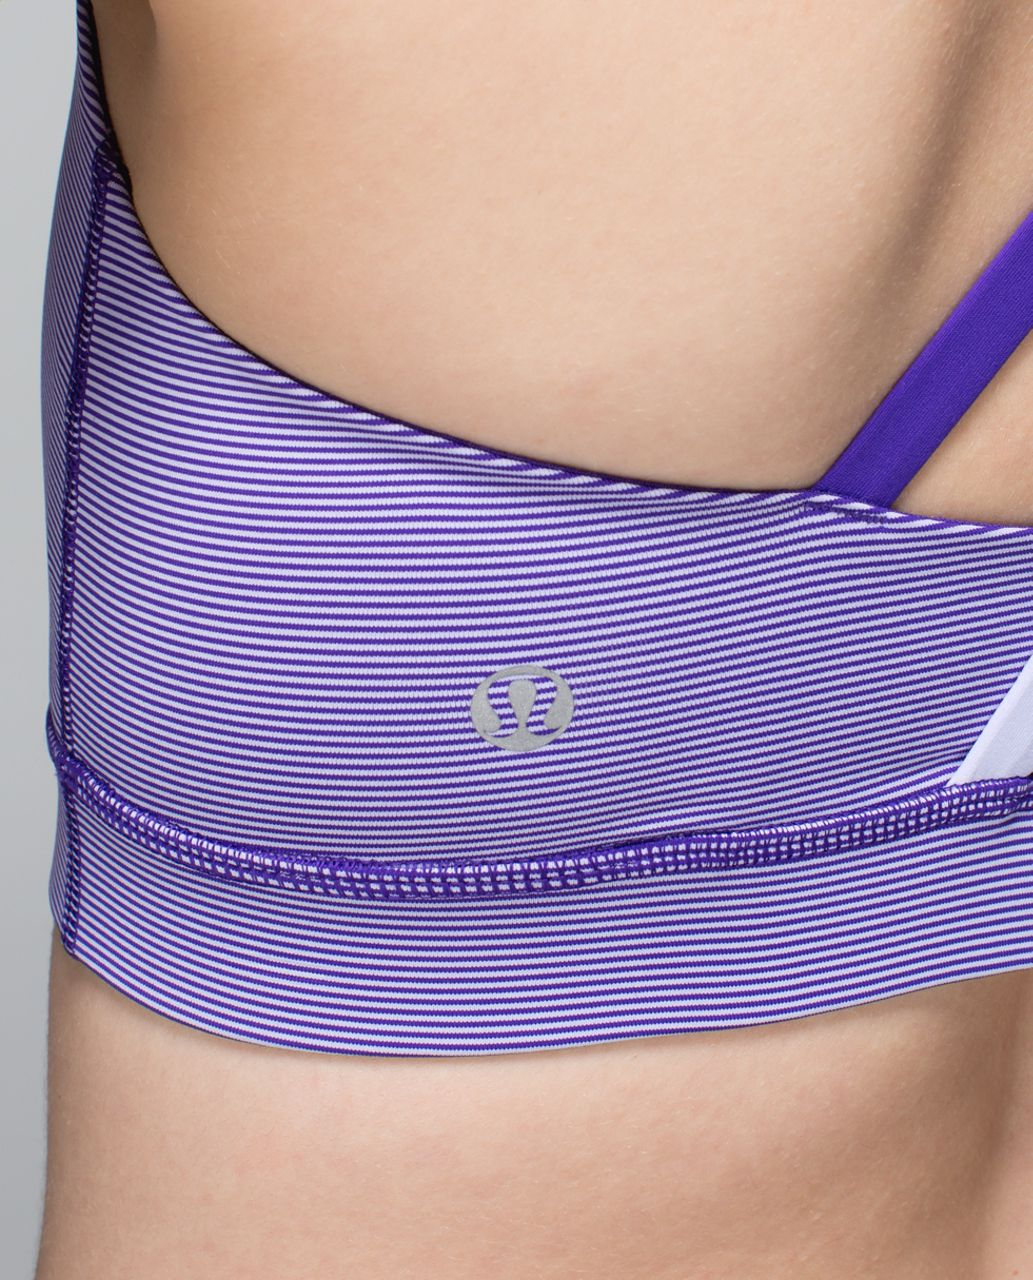 Lululemon Energy Bra - Wee Stripe Bruised Berry / Cool Breeze / Bruised Berry